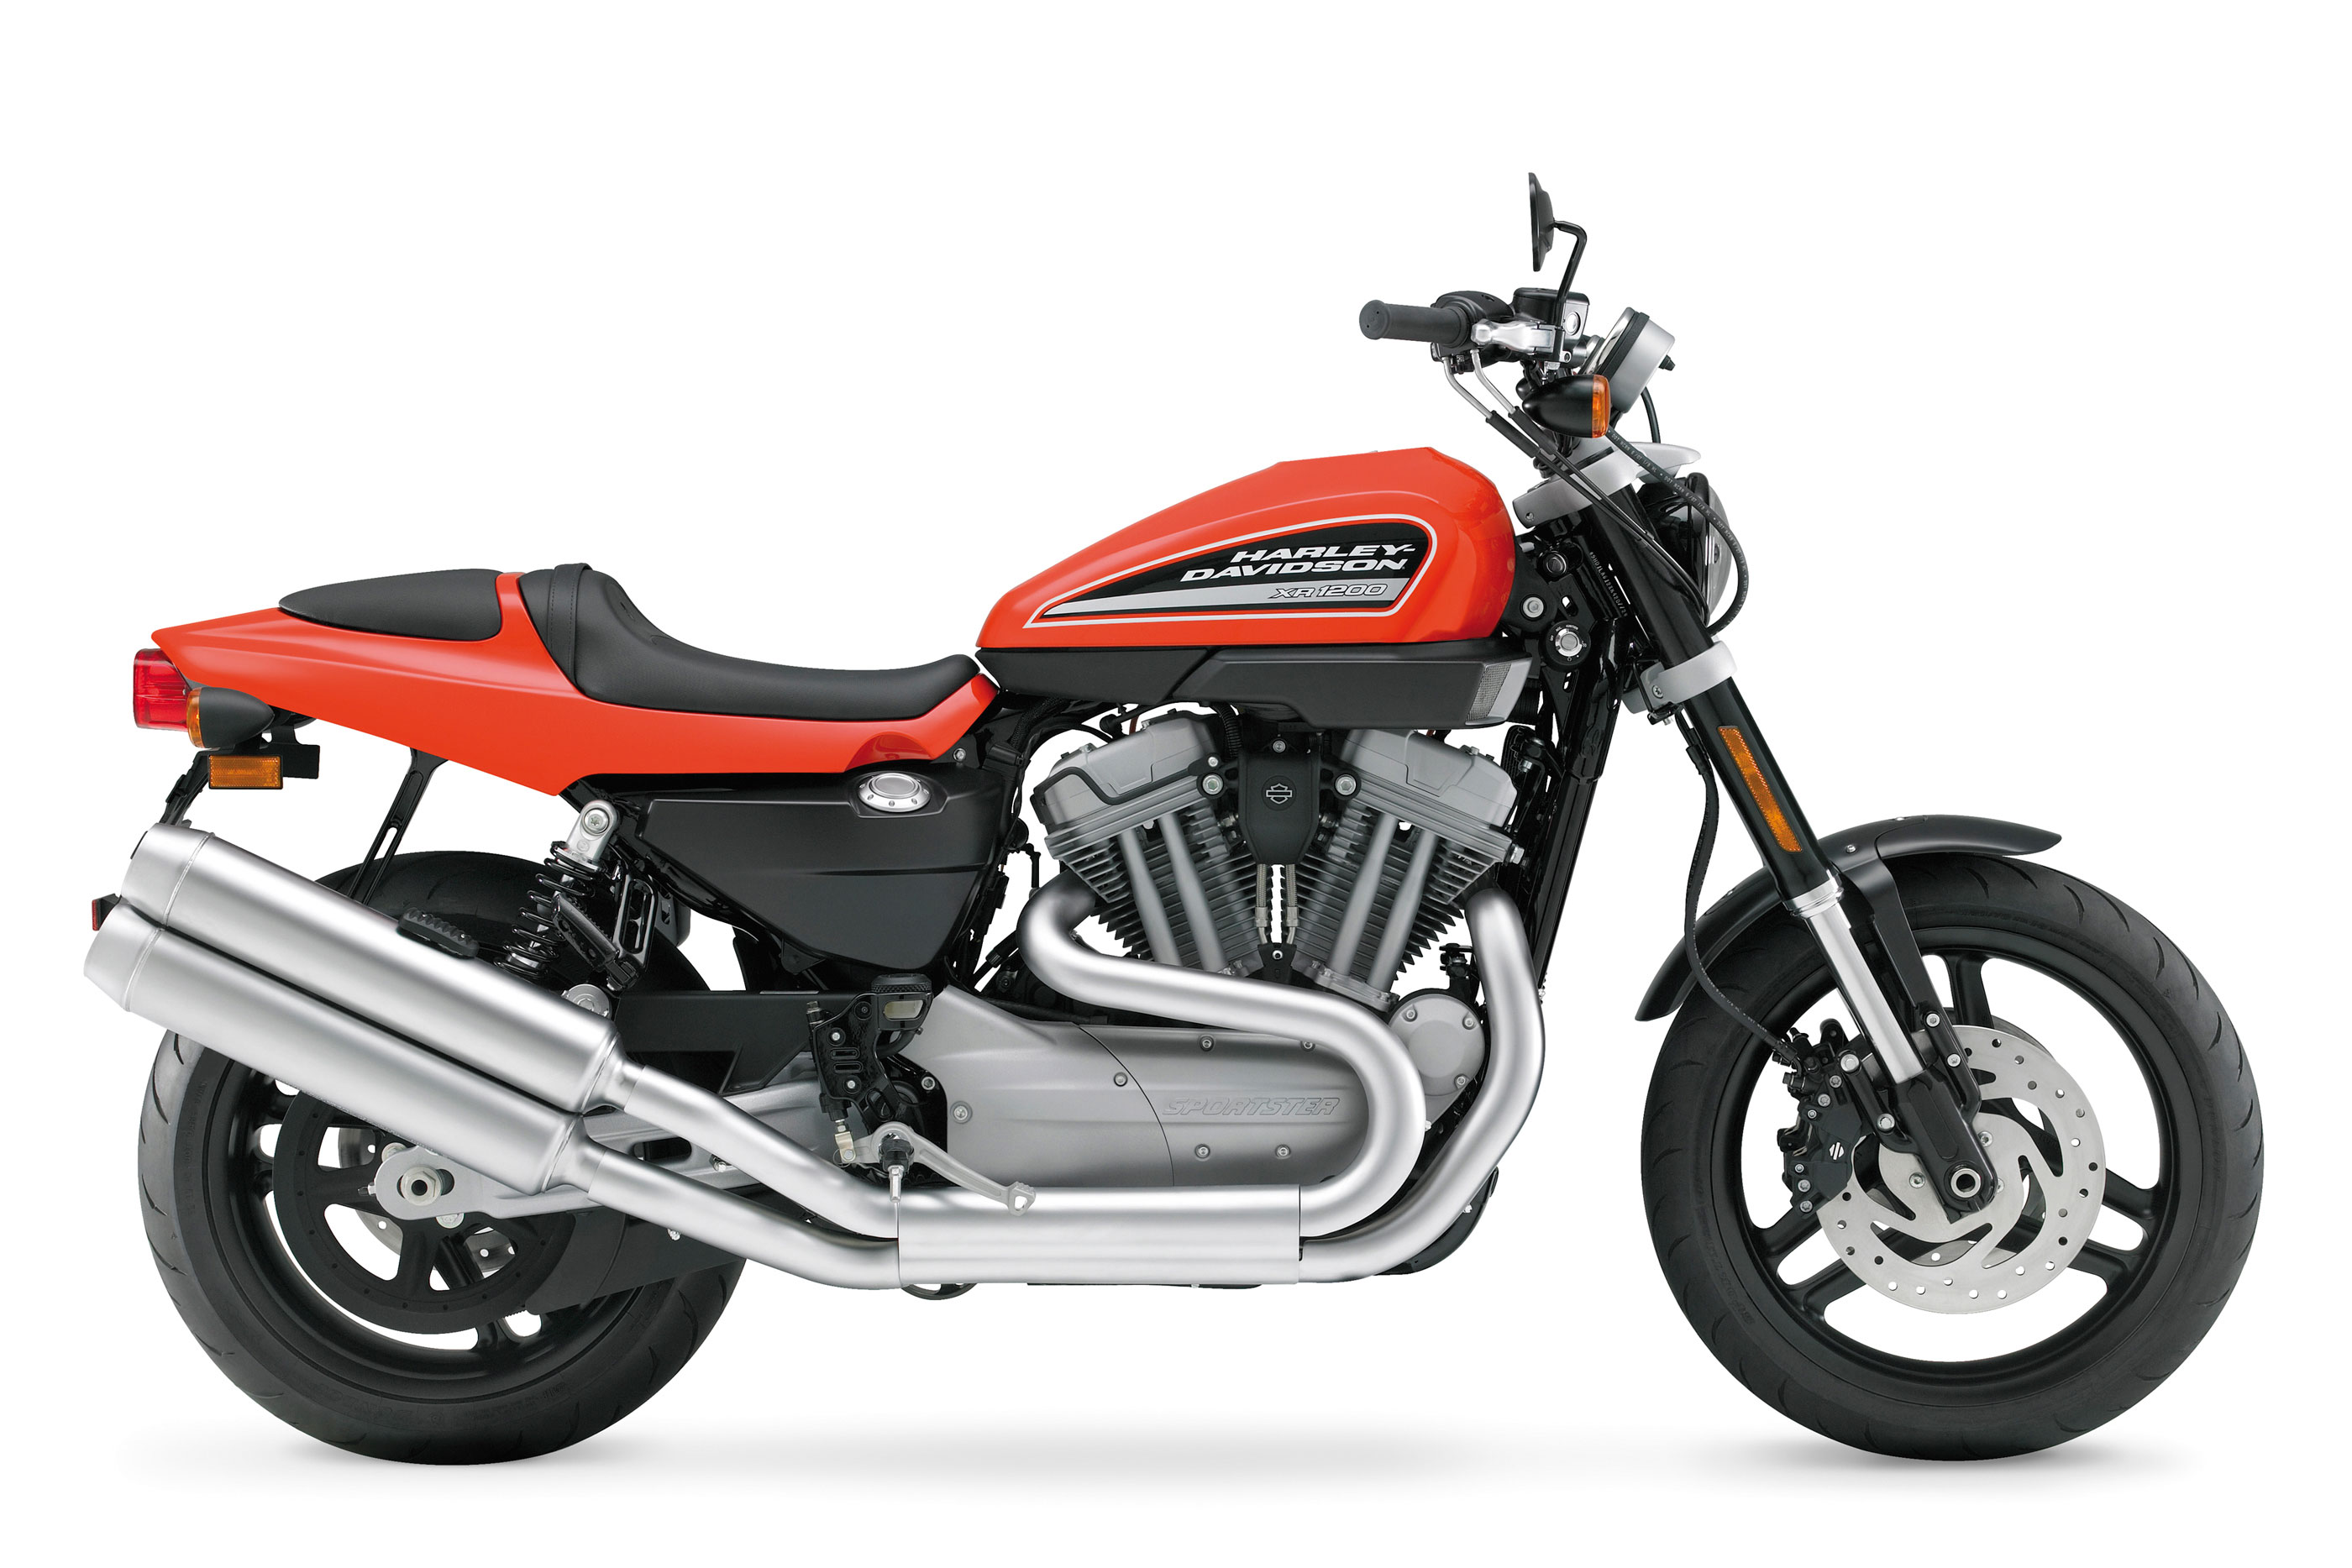 Harley-davidson xr photo - 4